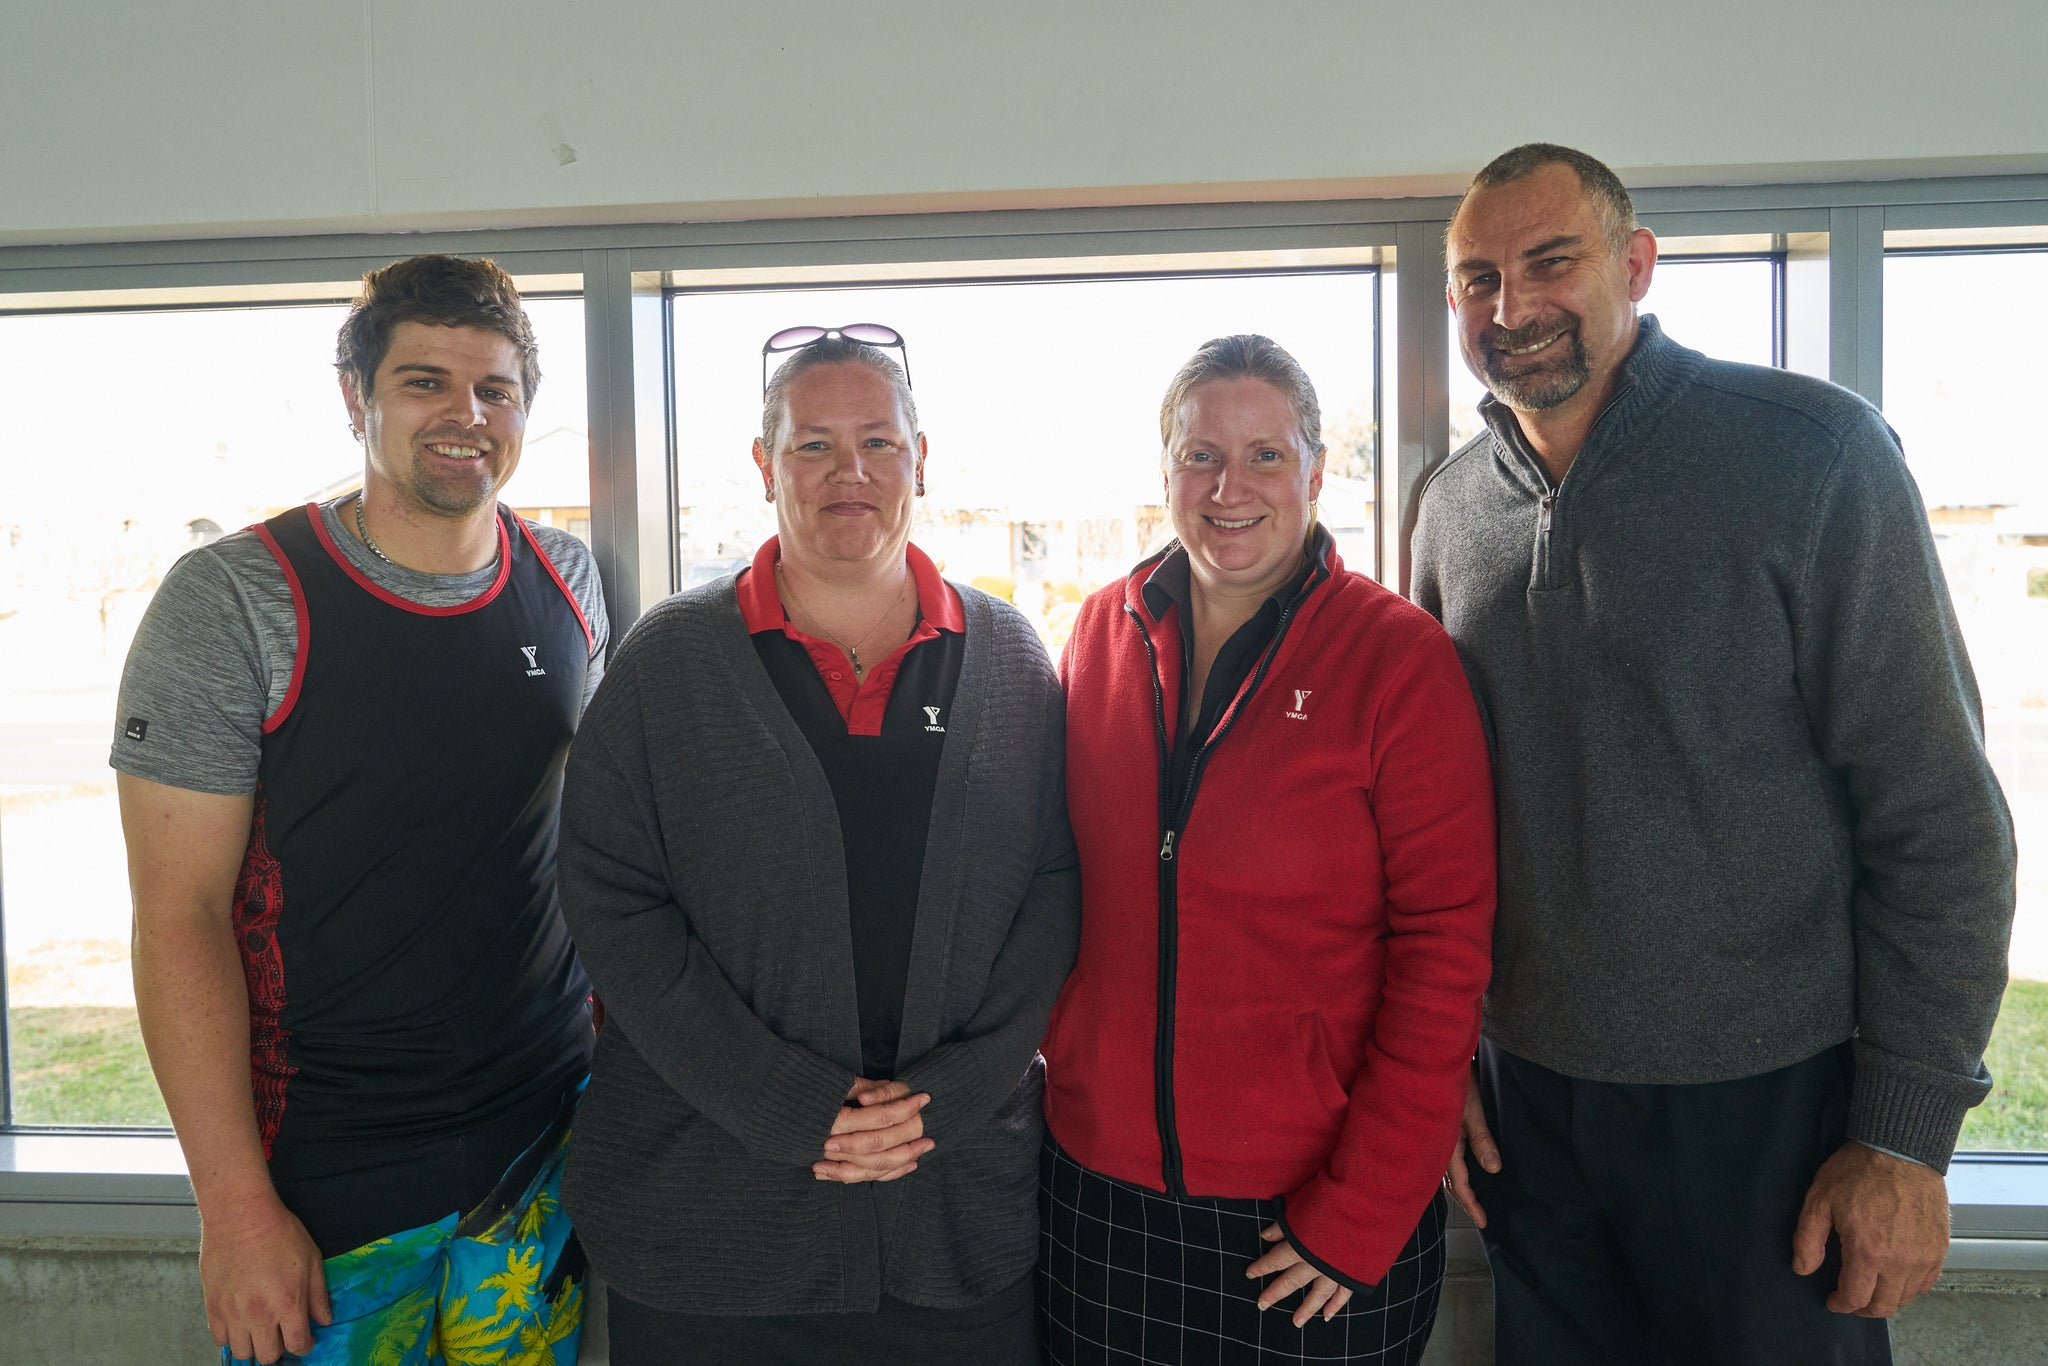 Gungahlin Leisure Centre launch of Salti Active Floating fitness classes